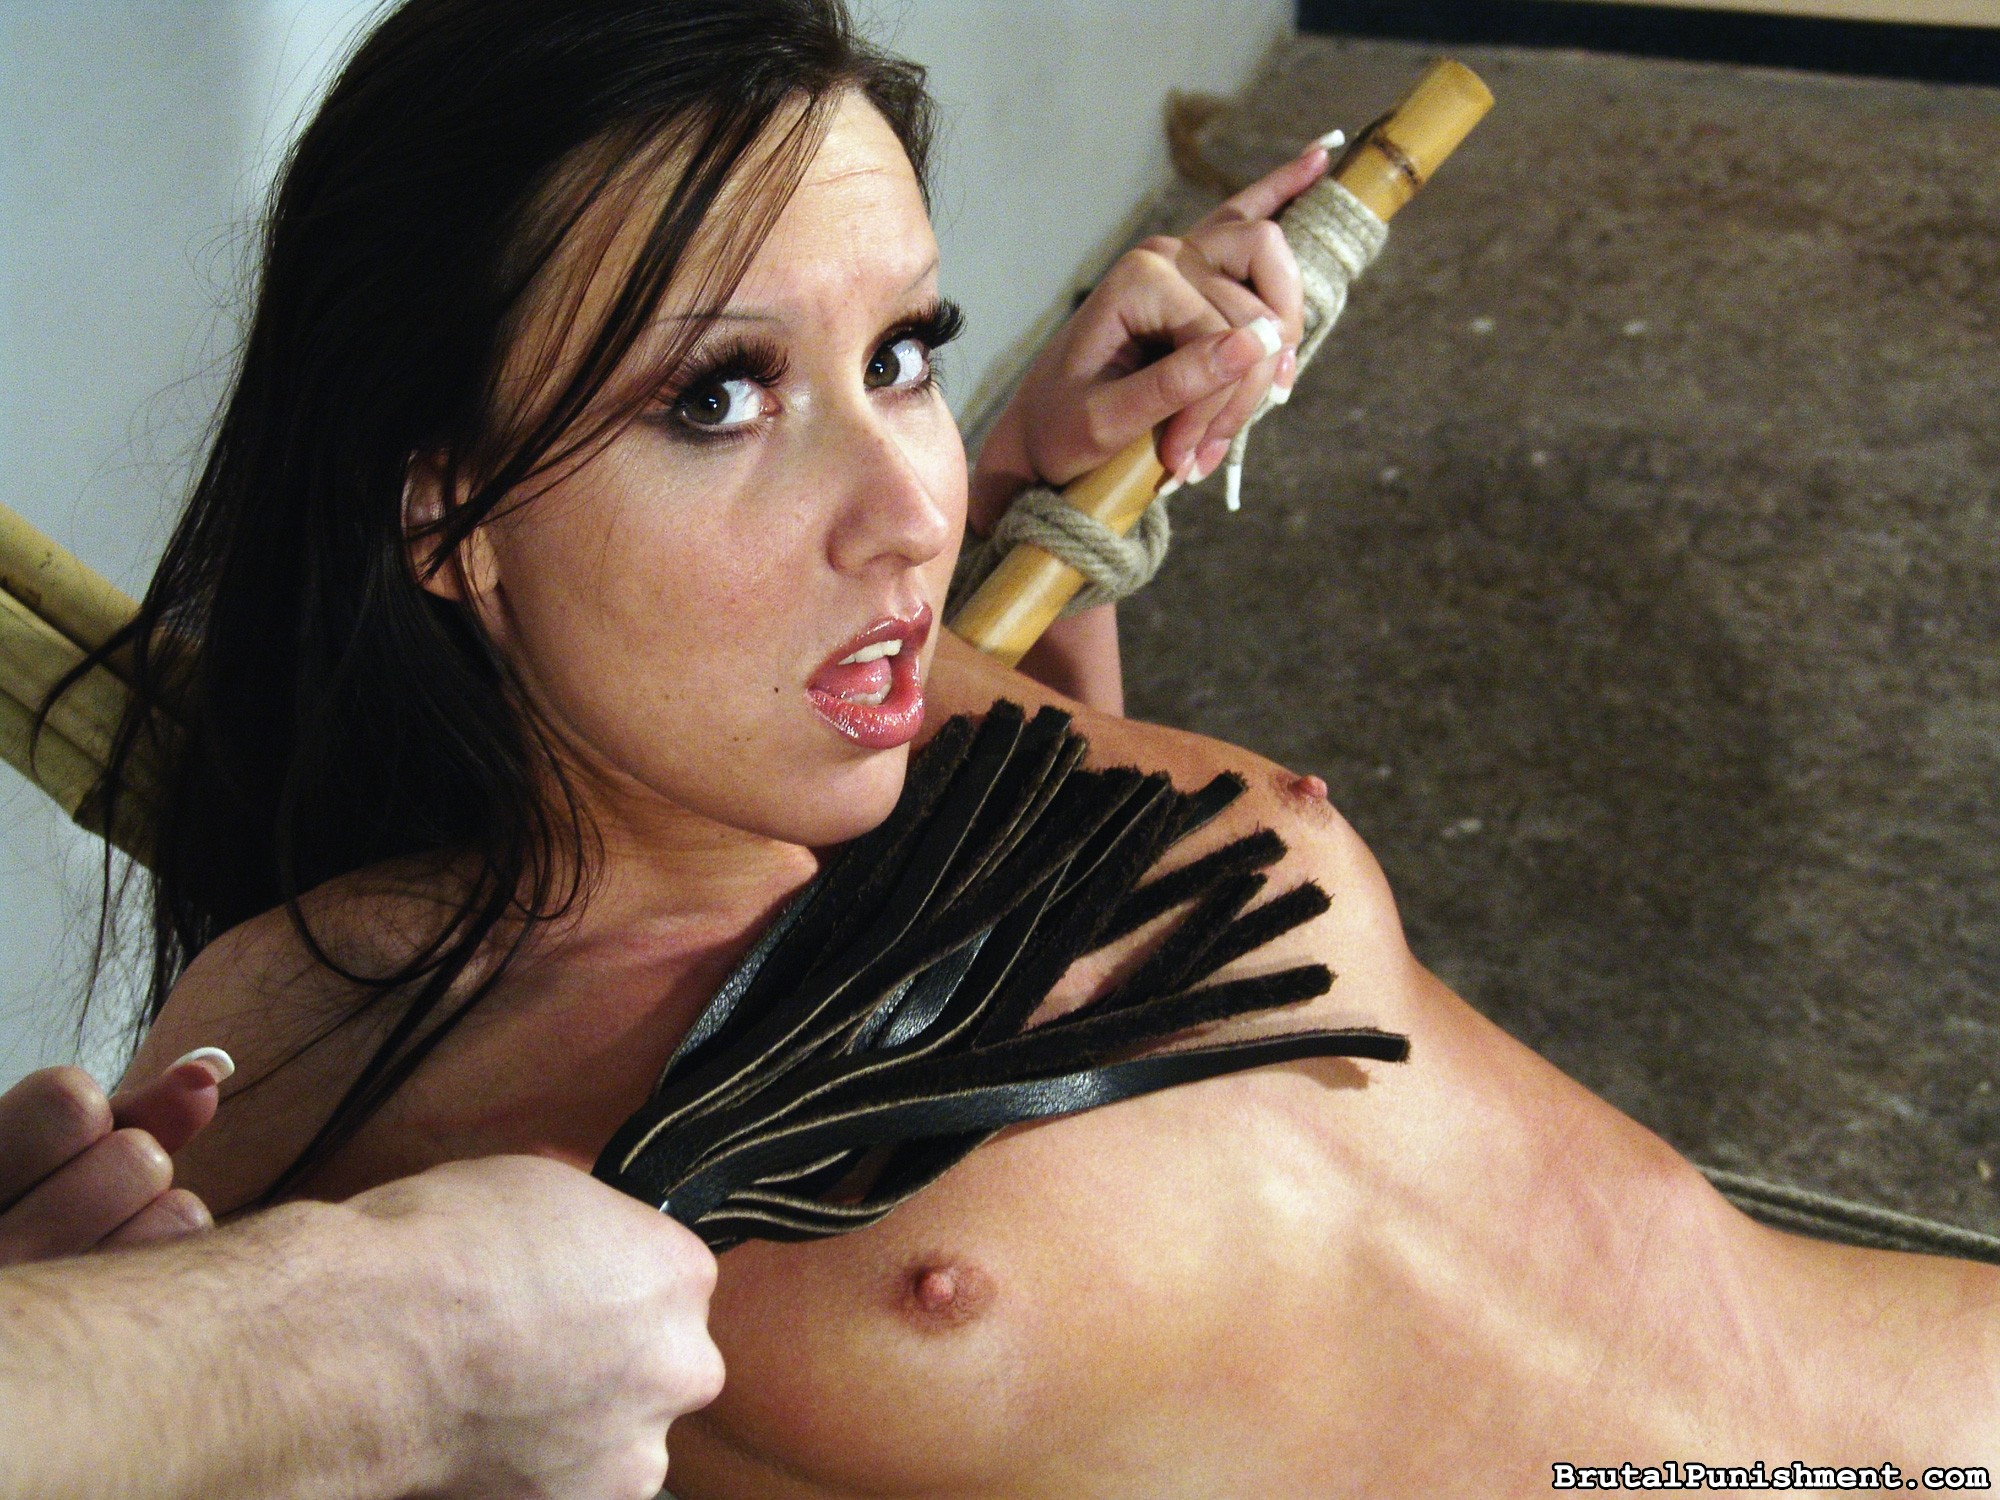 Wild Ache Hoe Nicole Suffers Every Other Restrain Bondage Consultation